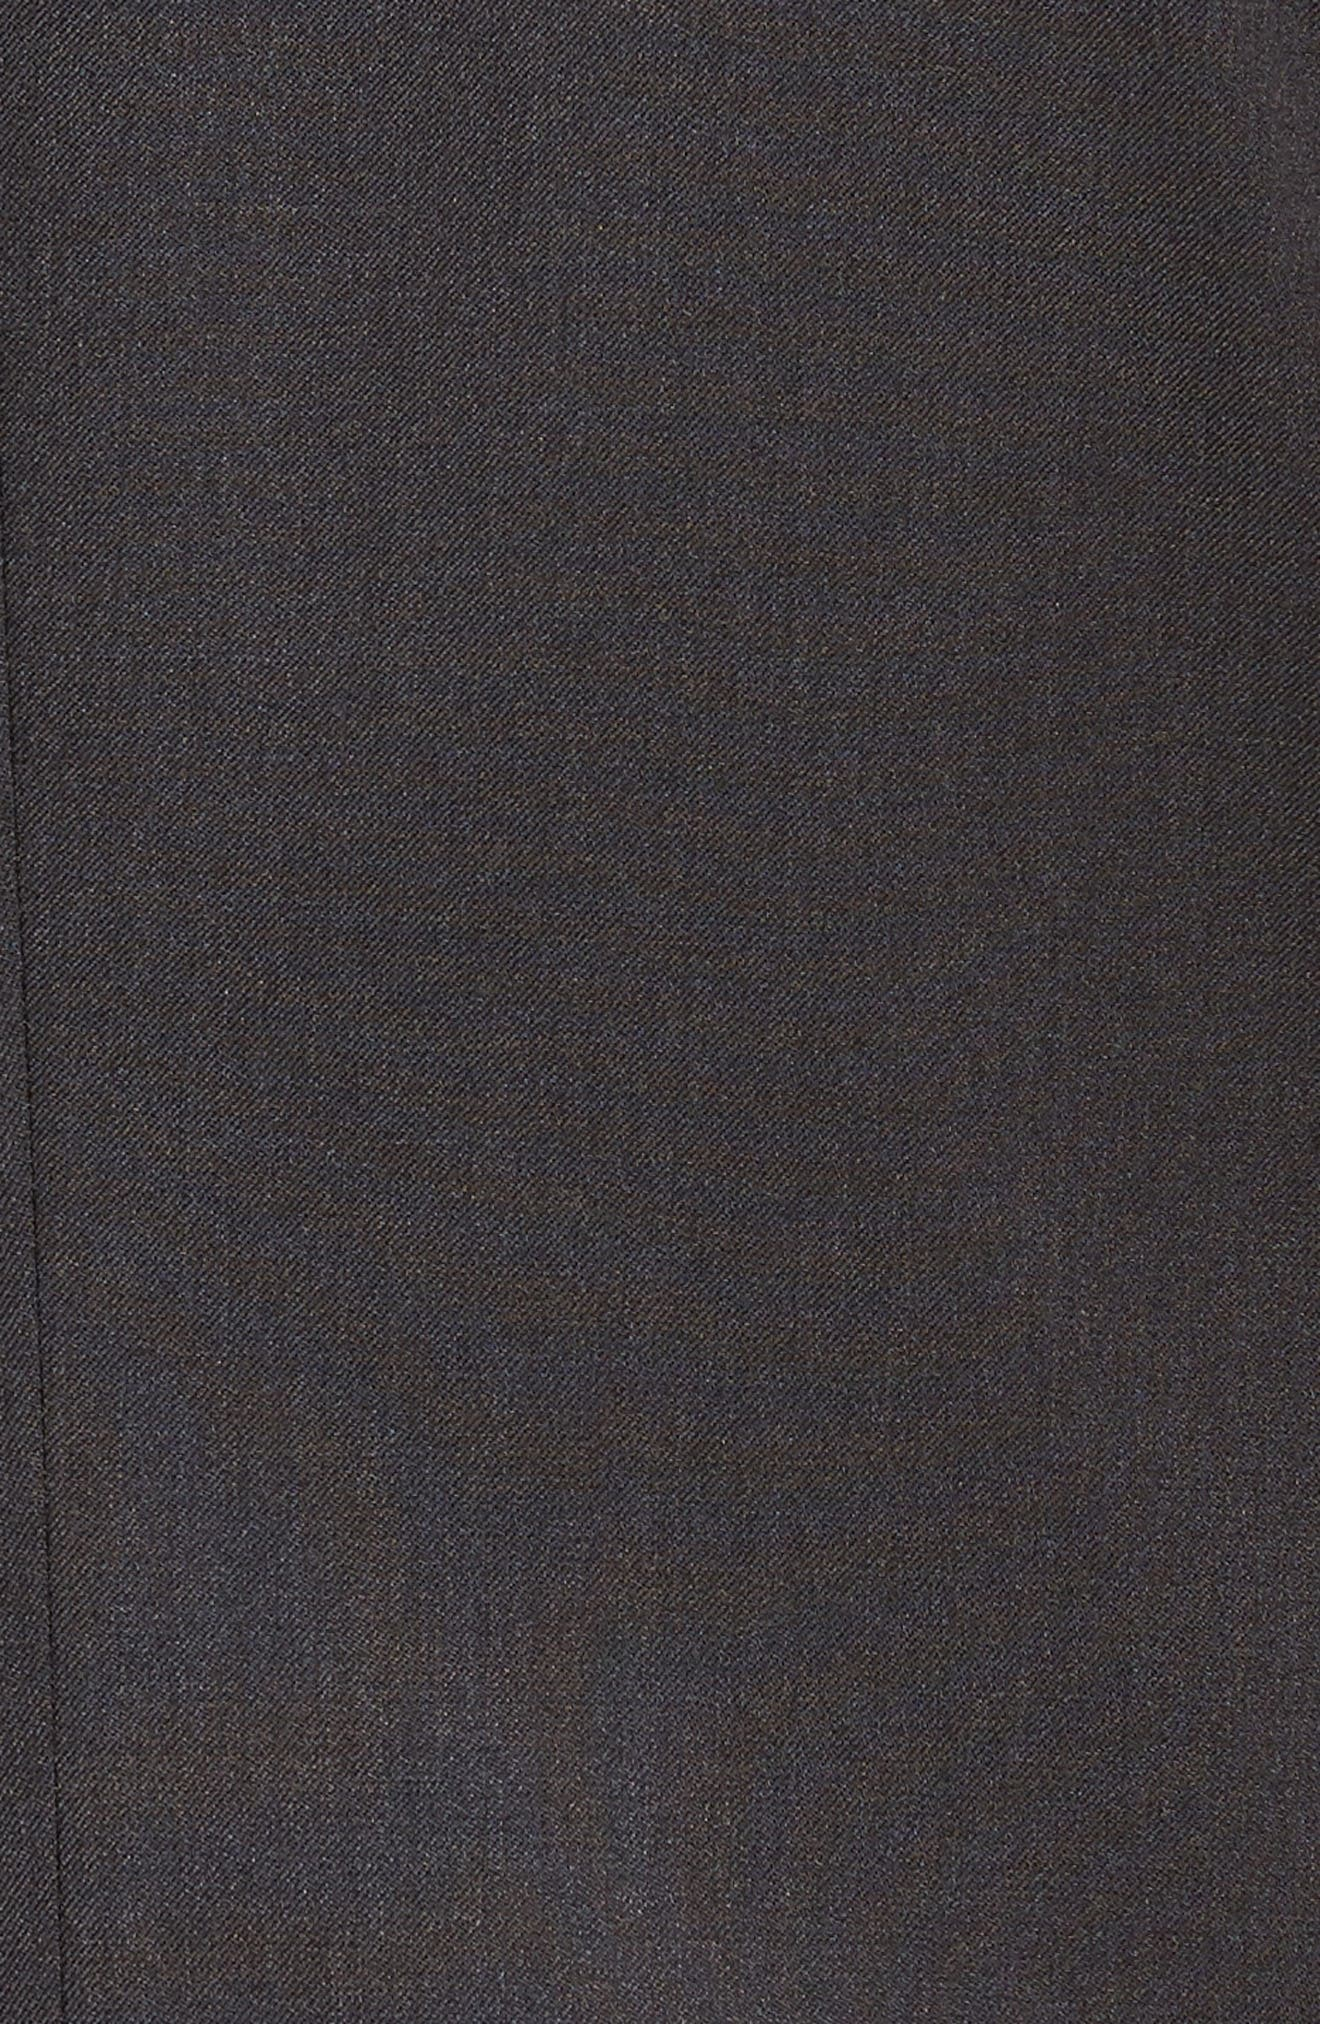 'Ryan/Win' Extra Trim Fit Solid Wool Suit,                             Alternate thumbnail 9, color,                             021